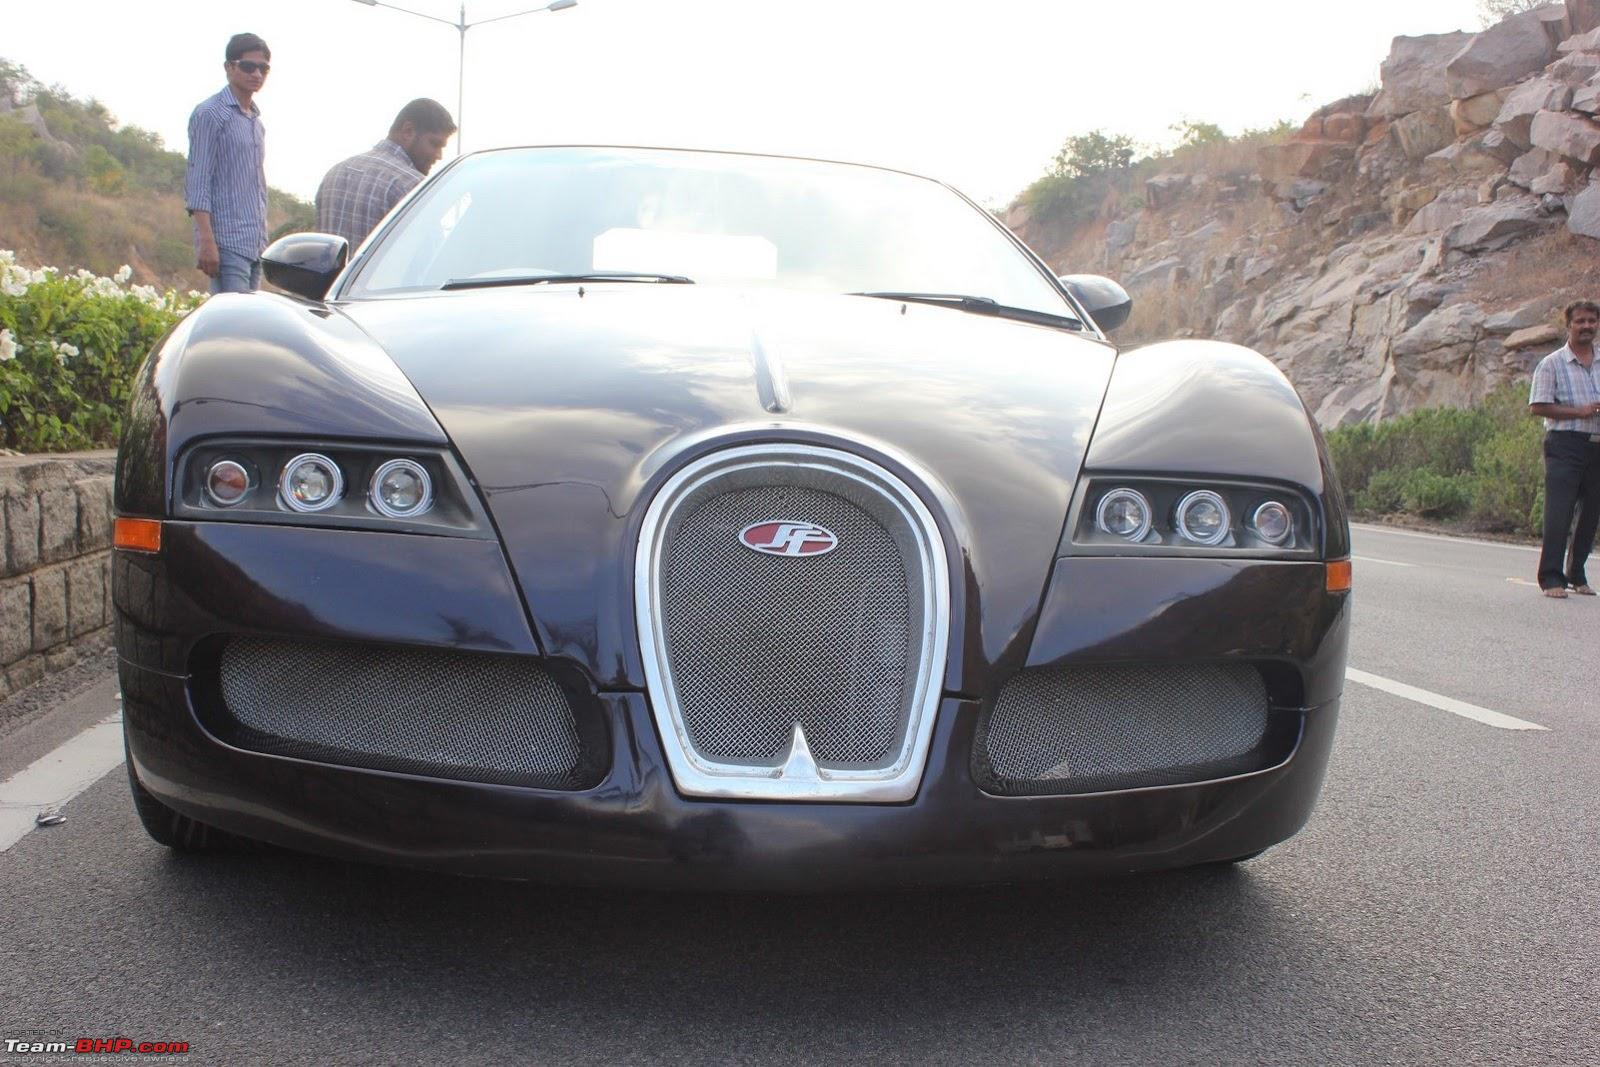 Pics Bugatti Veyron Replica In India Edit One More On Pg 3